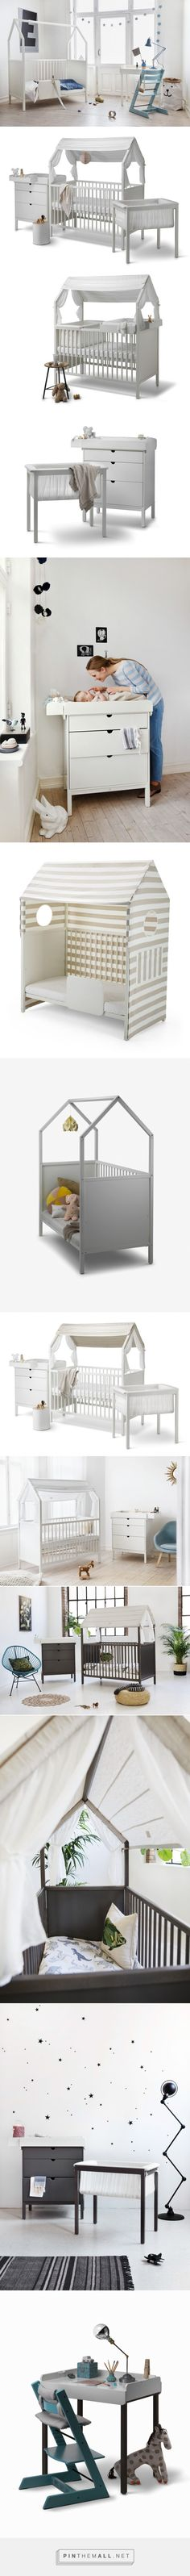 Stokke Home: A Modular, Multifunctional Nursery - Design Milk - created via http://pinthemall.net